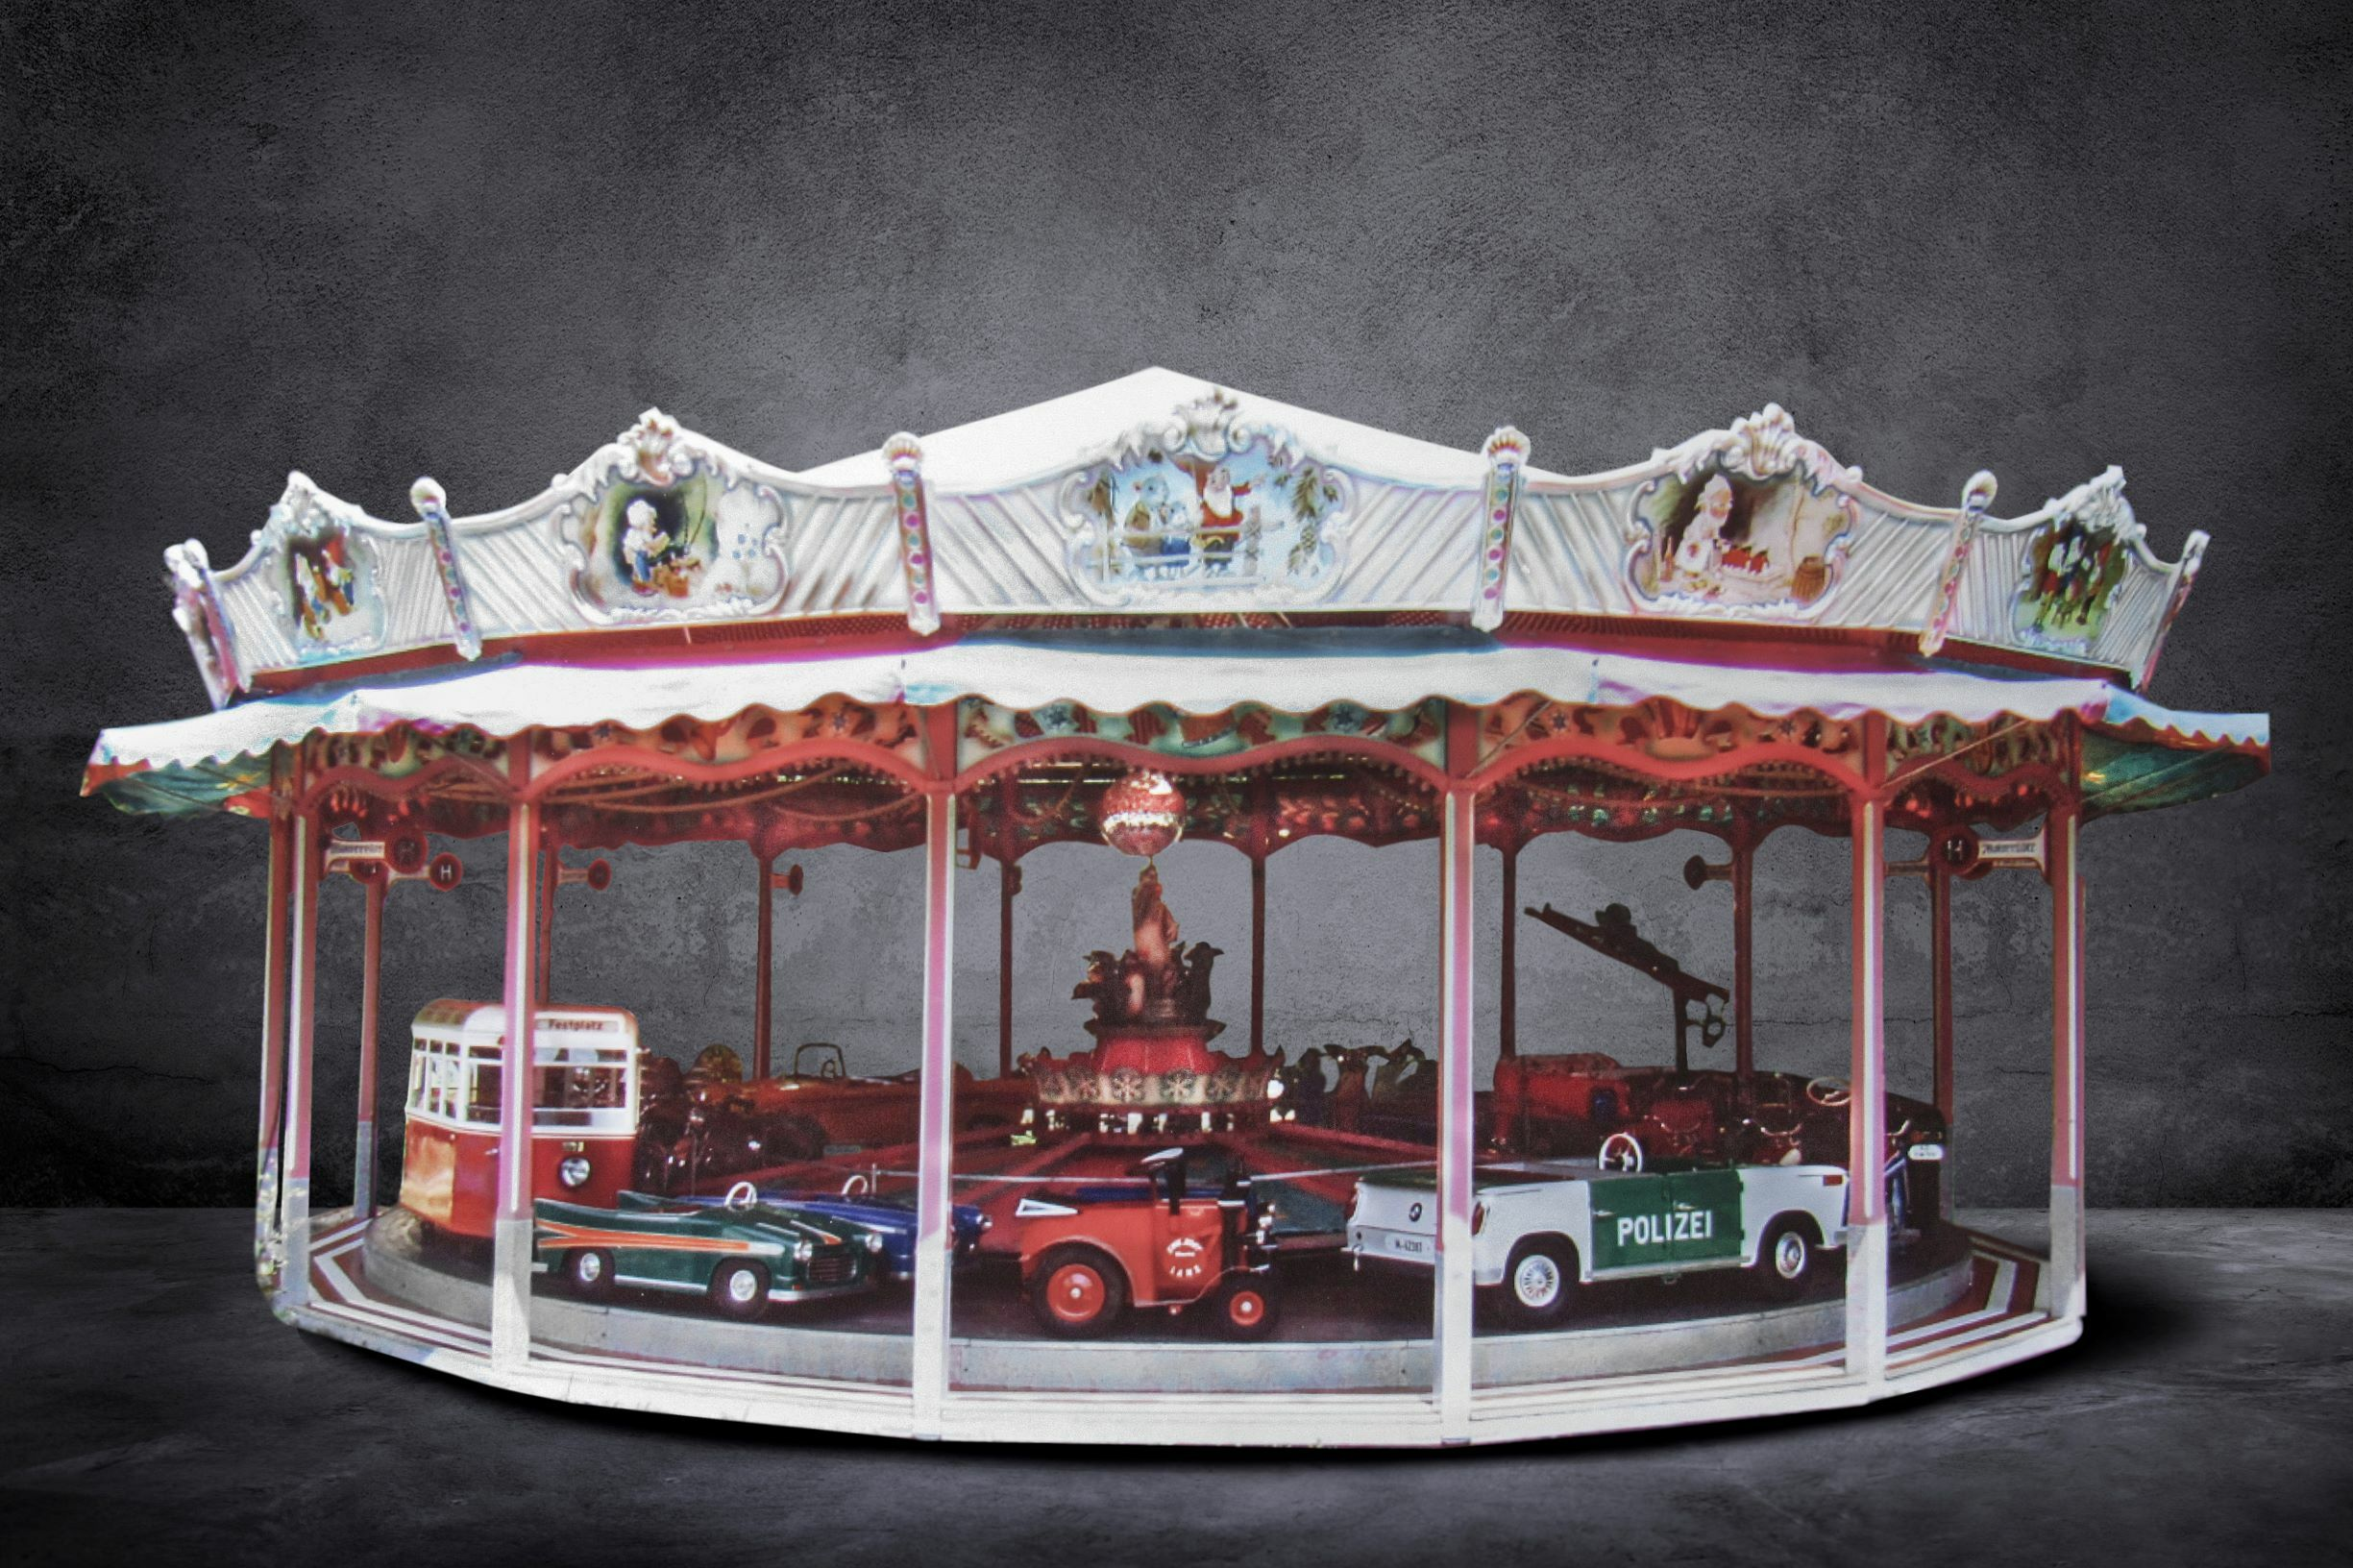 MAGNIFICENT FULL-SIZE TRANSPORTATION-THEMED CAROUSEL